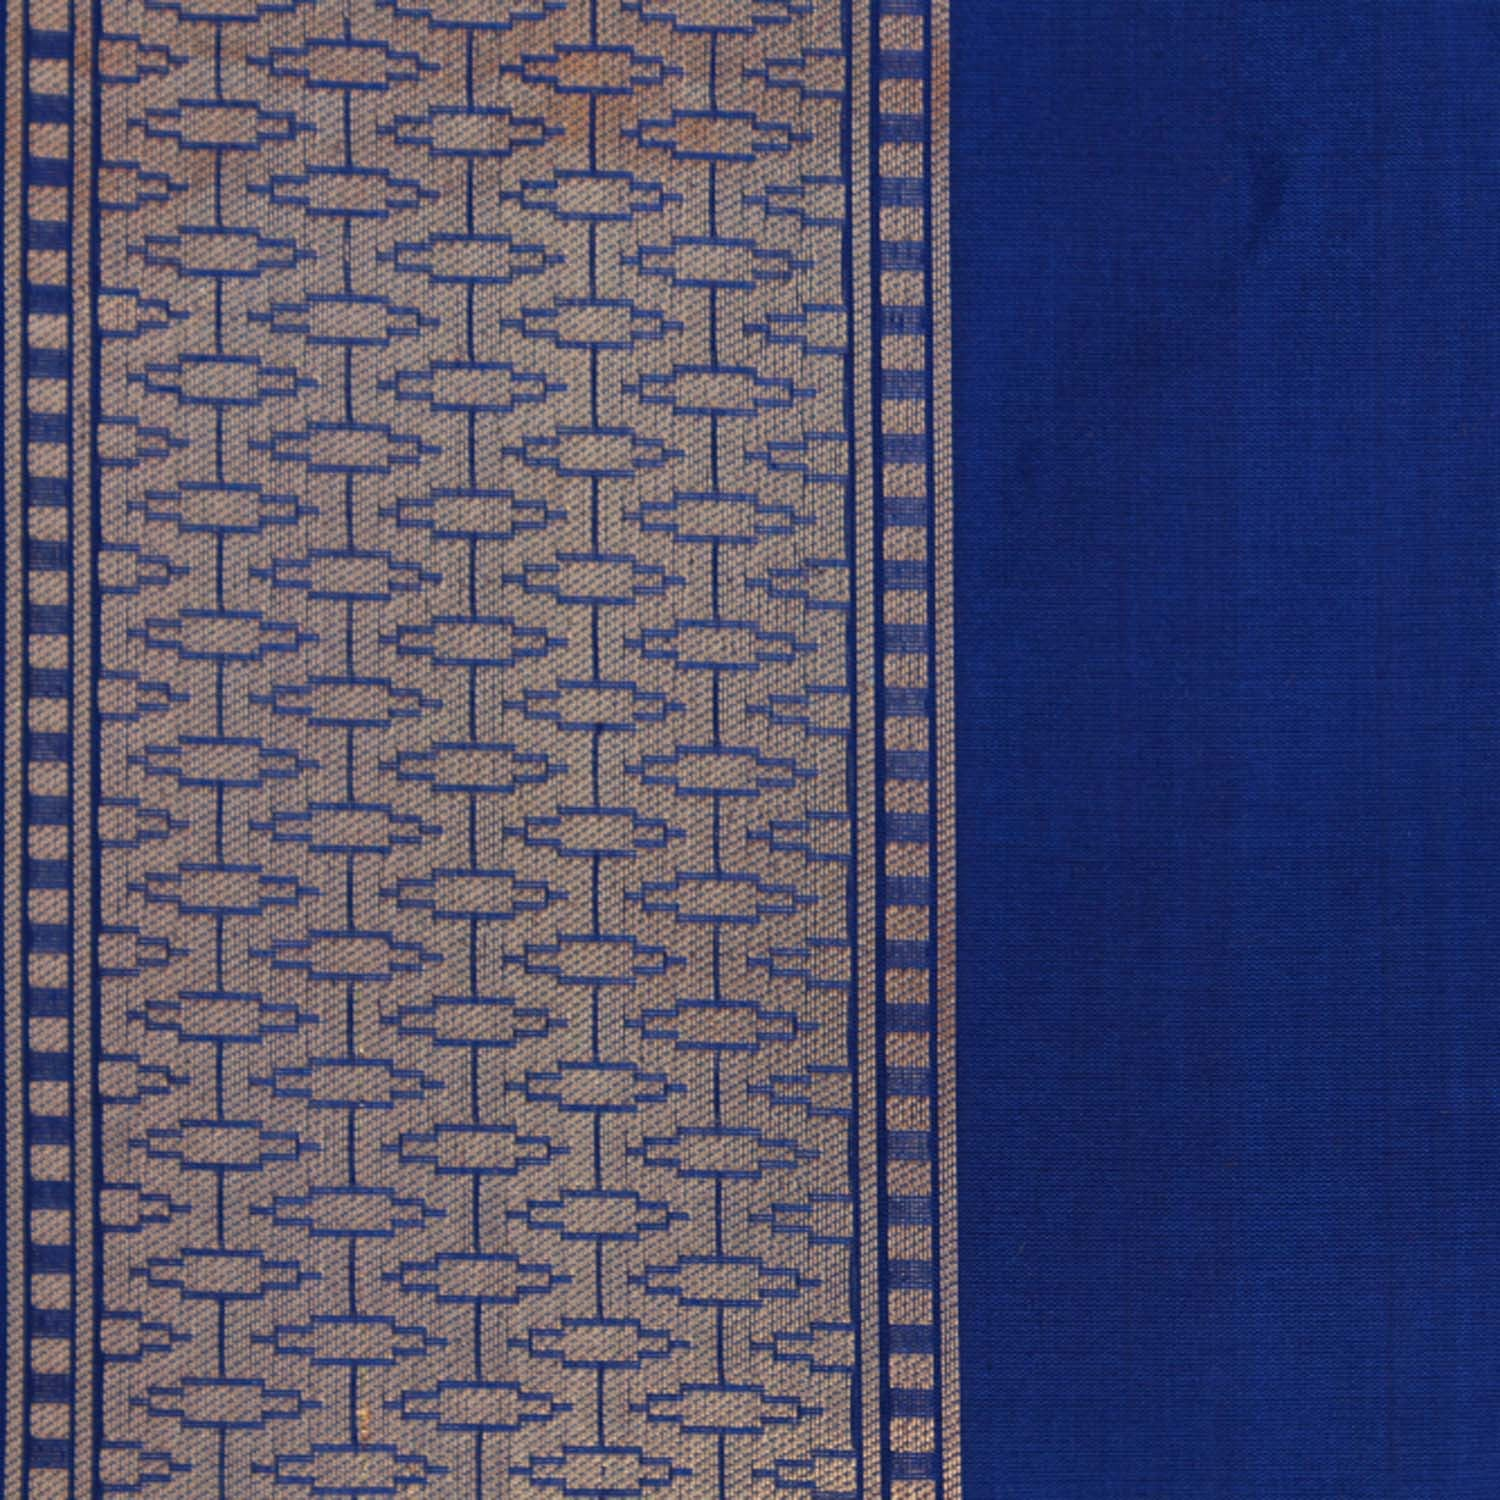 Royal Blue Pure Silk Georgette Banarasi Handloom Saree - Tilfi - 4